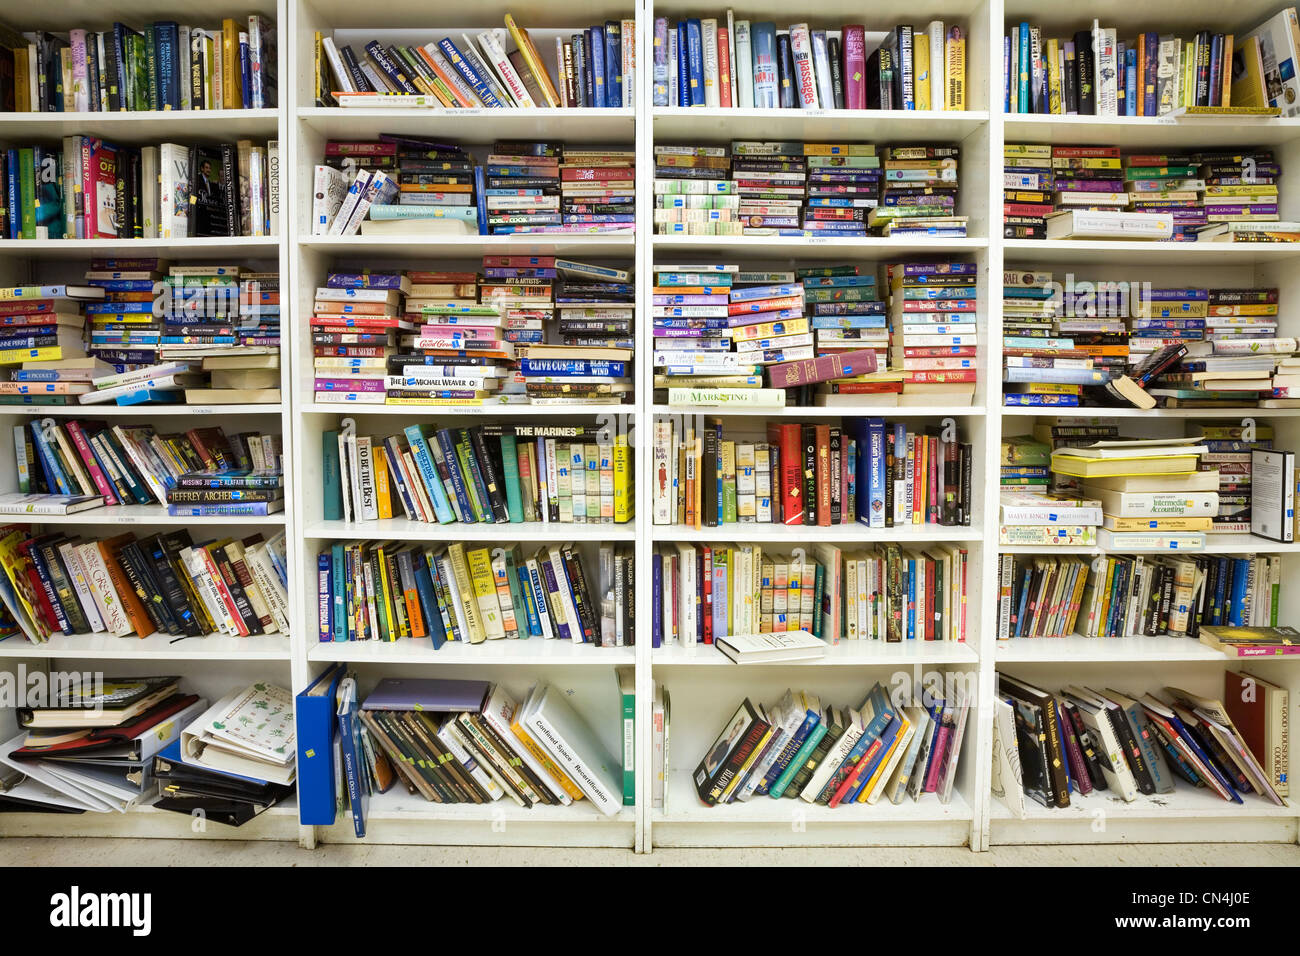 Books on bookshelves - Stock Image